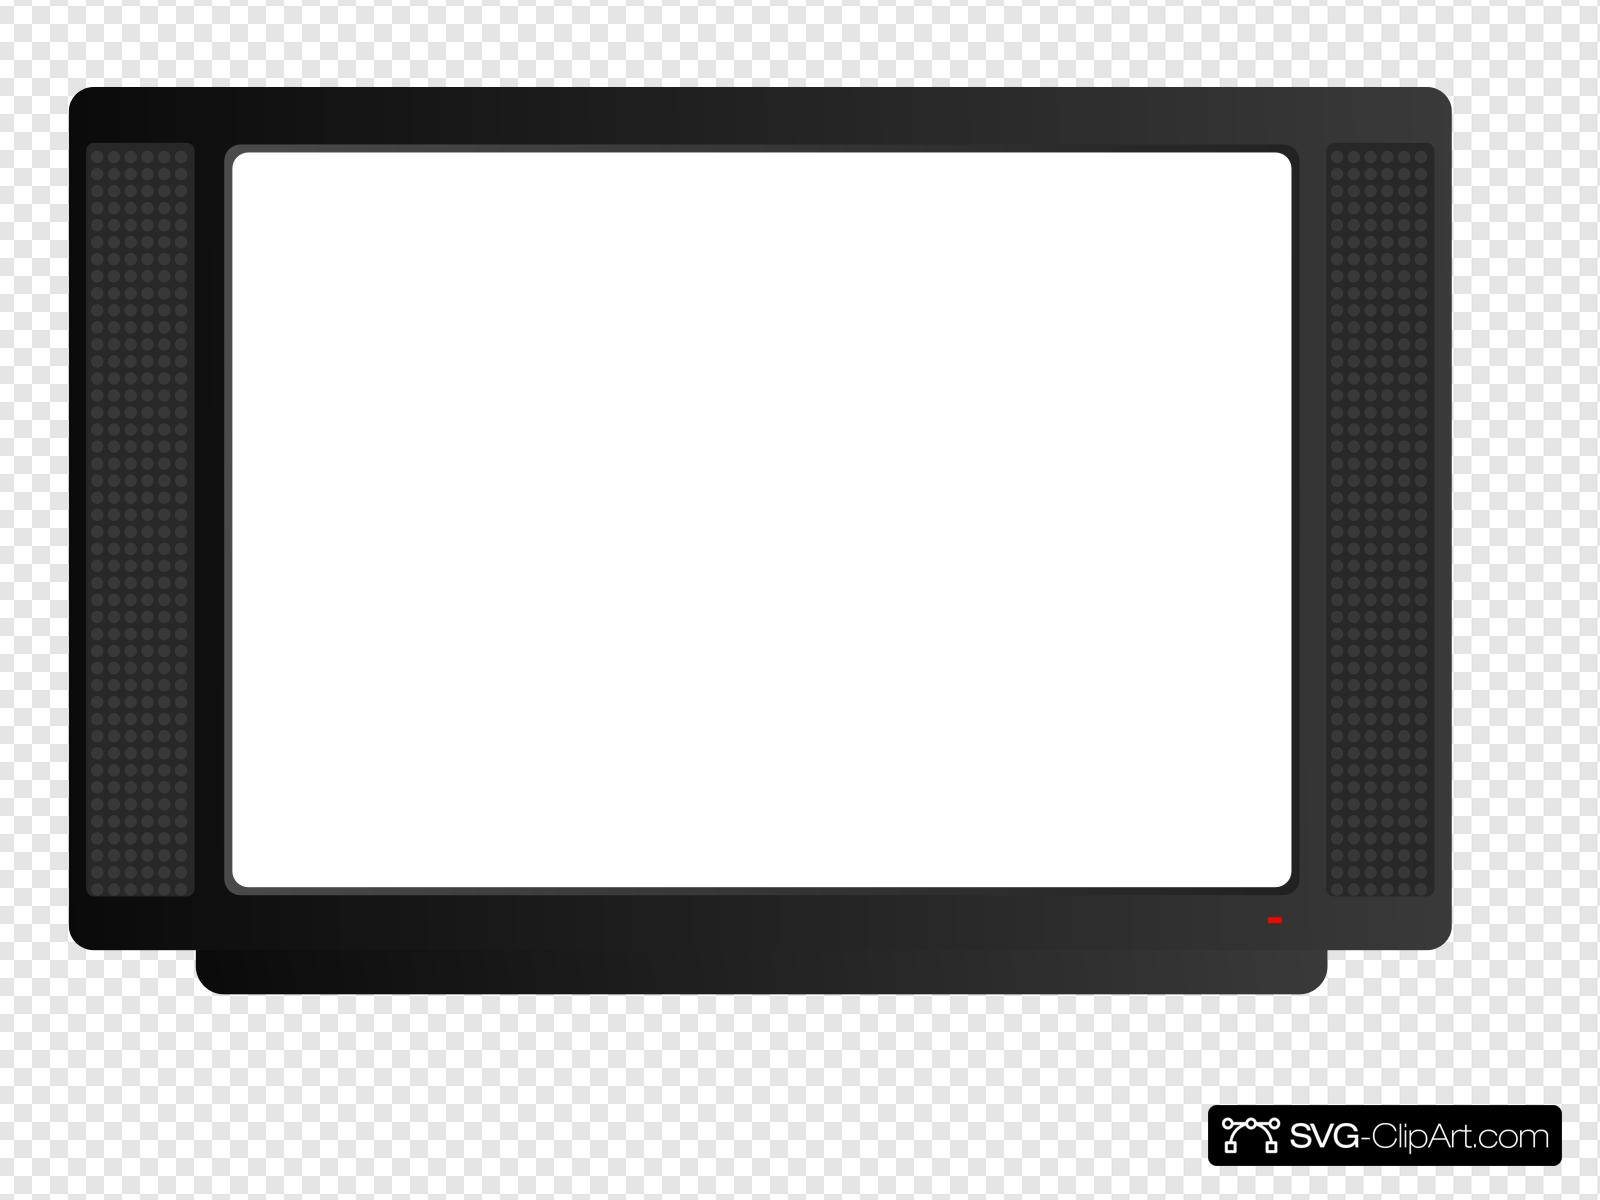 White Cartoon Tv Clip art, Icon and SVG.